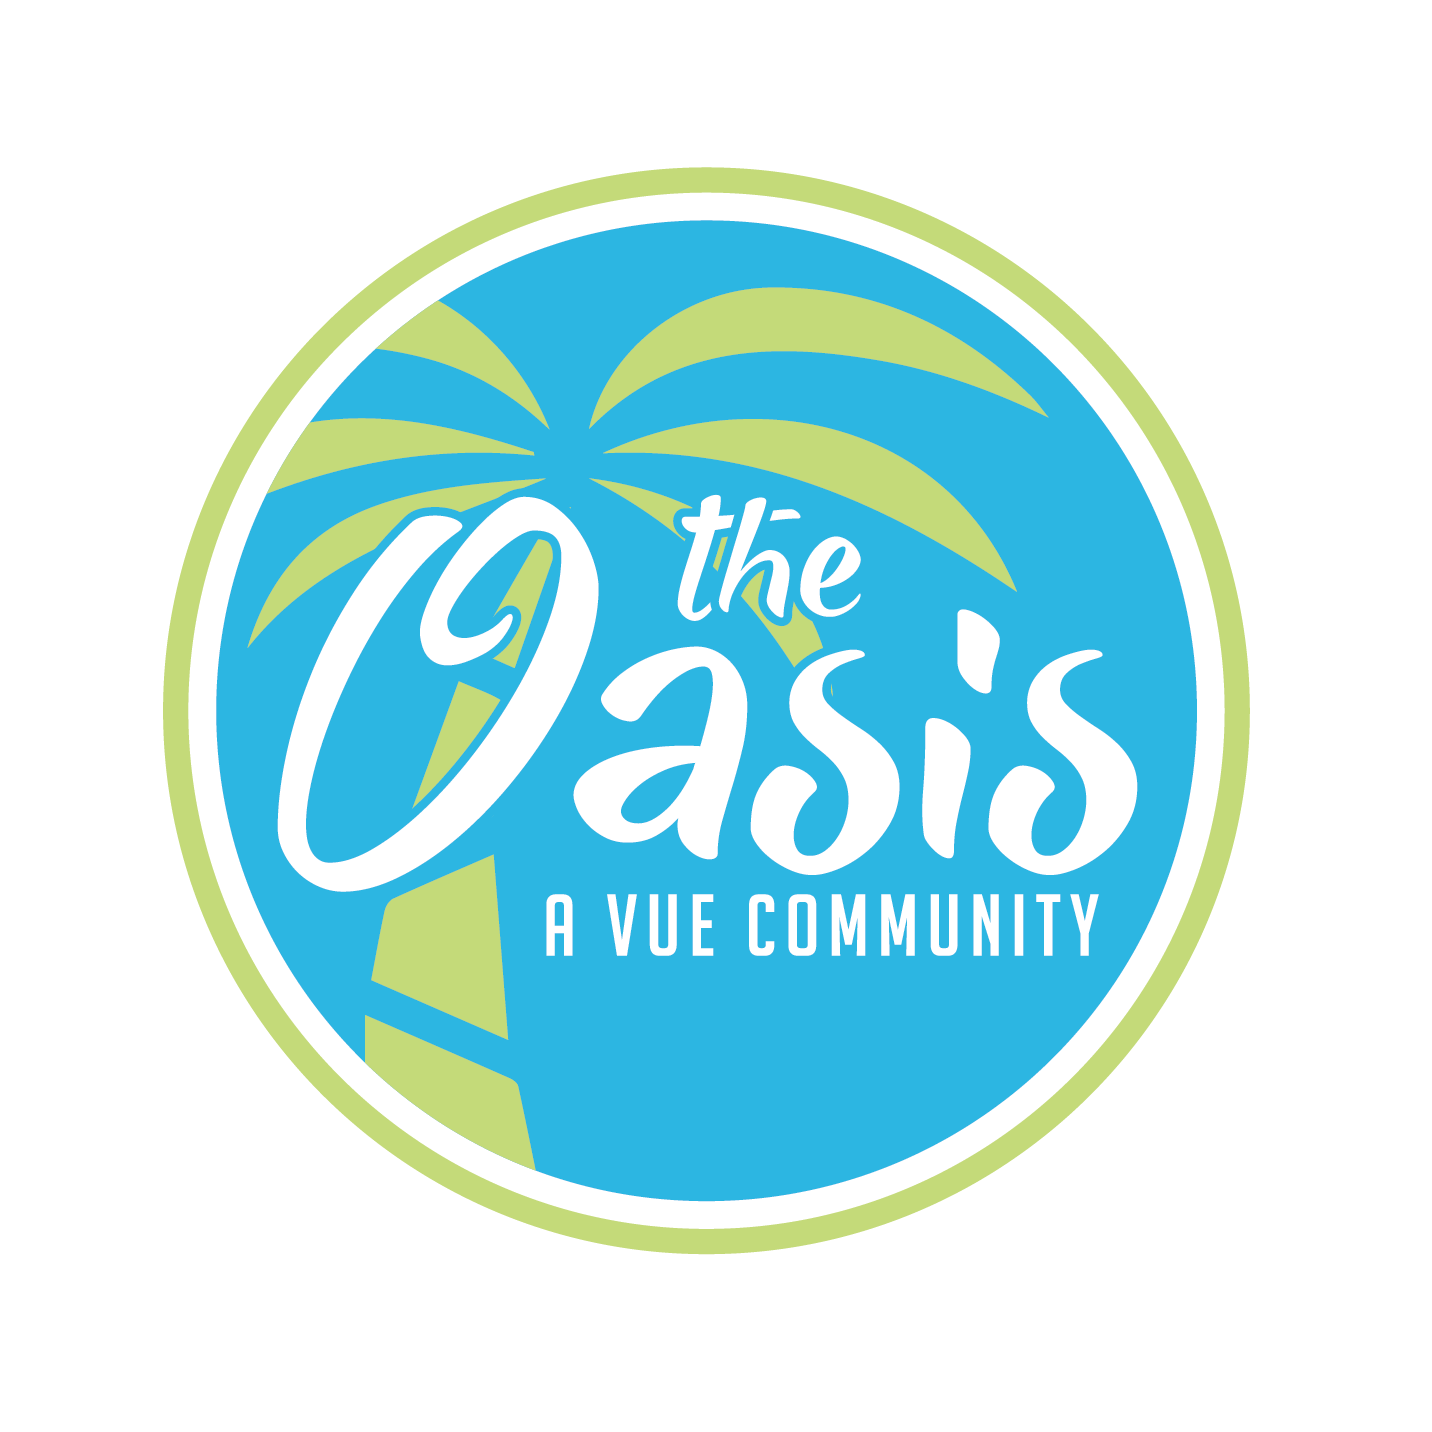 The Oasis A VUE Community